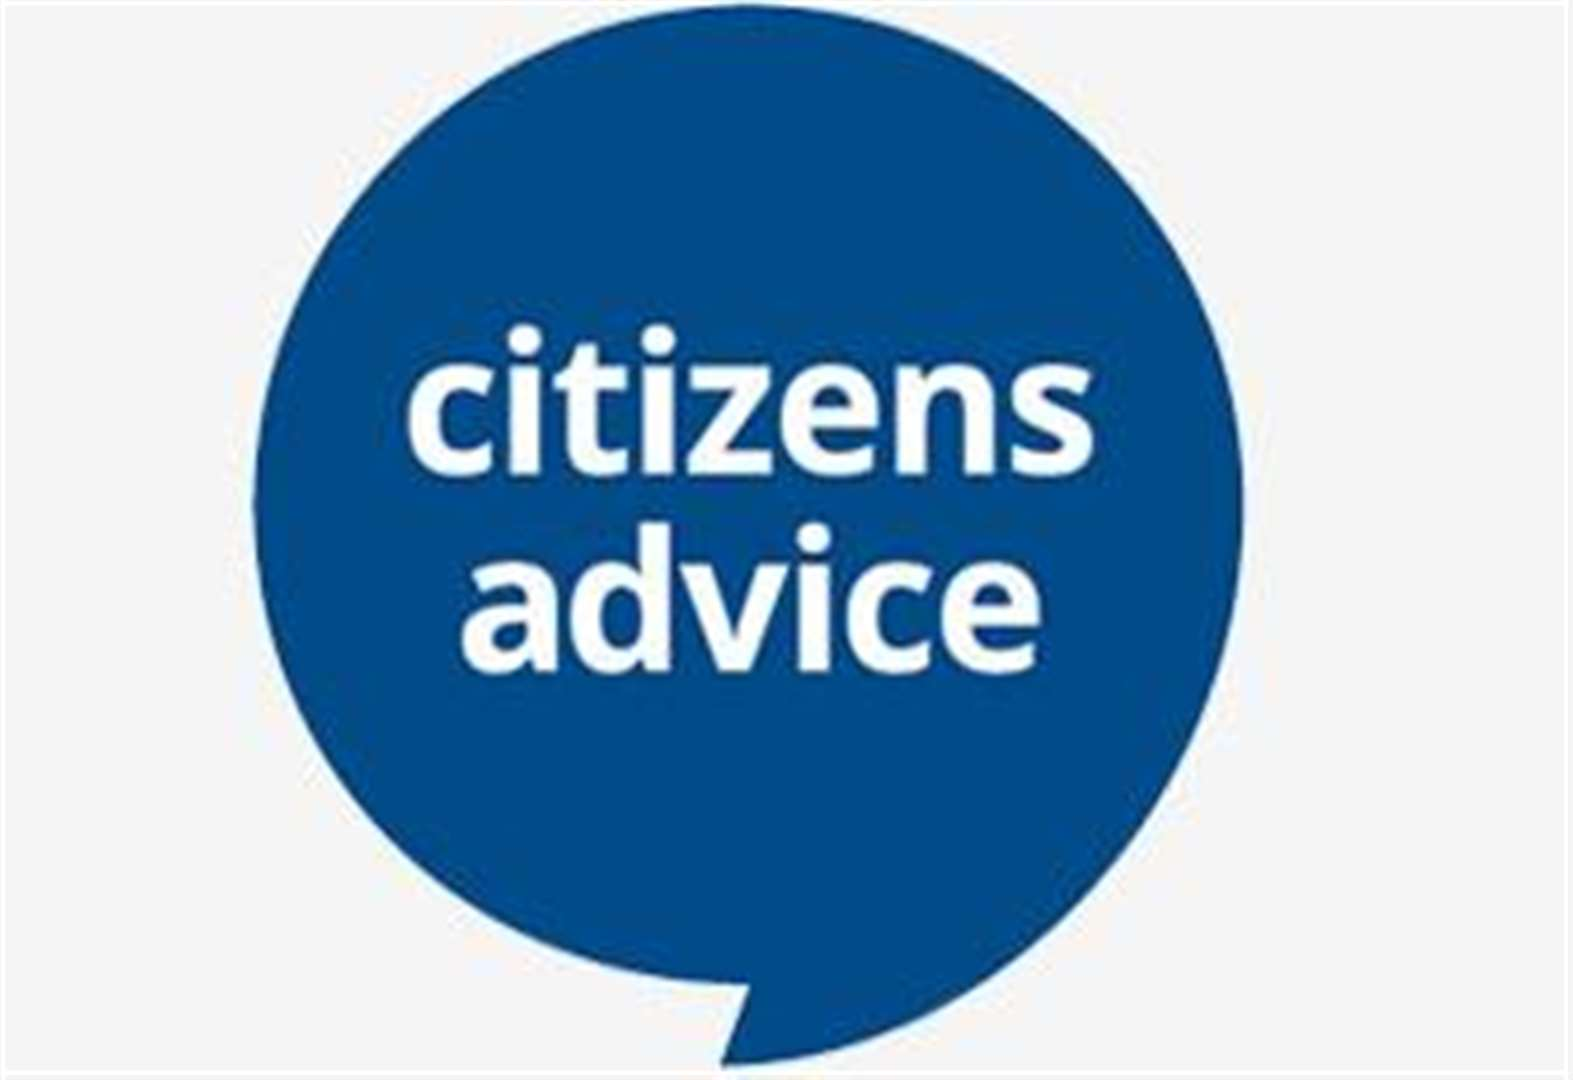 Funding agreed for Citizens Advice in Suffolk